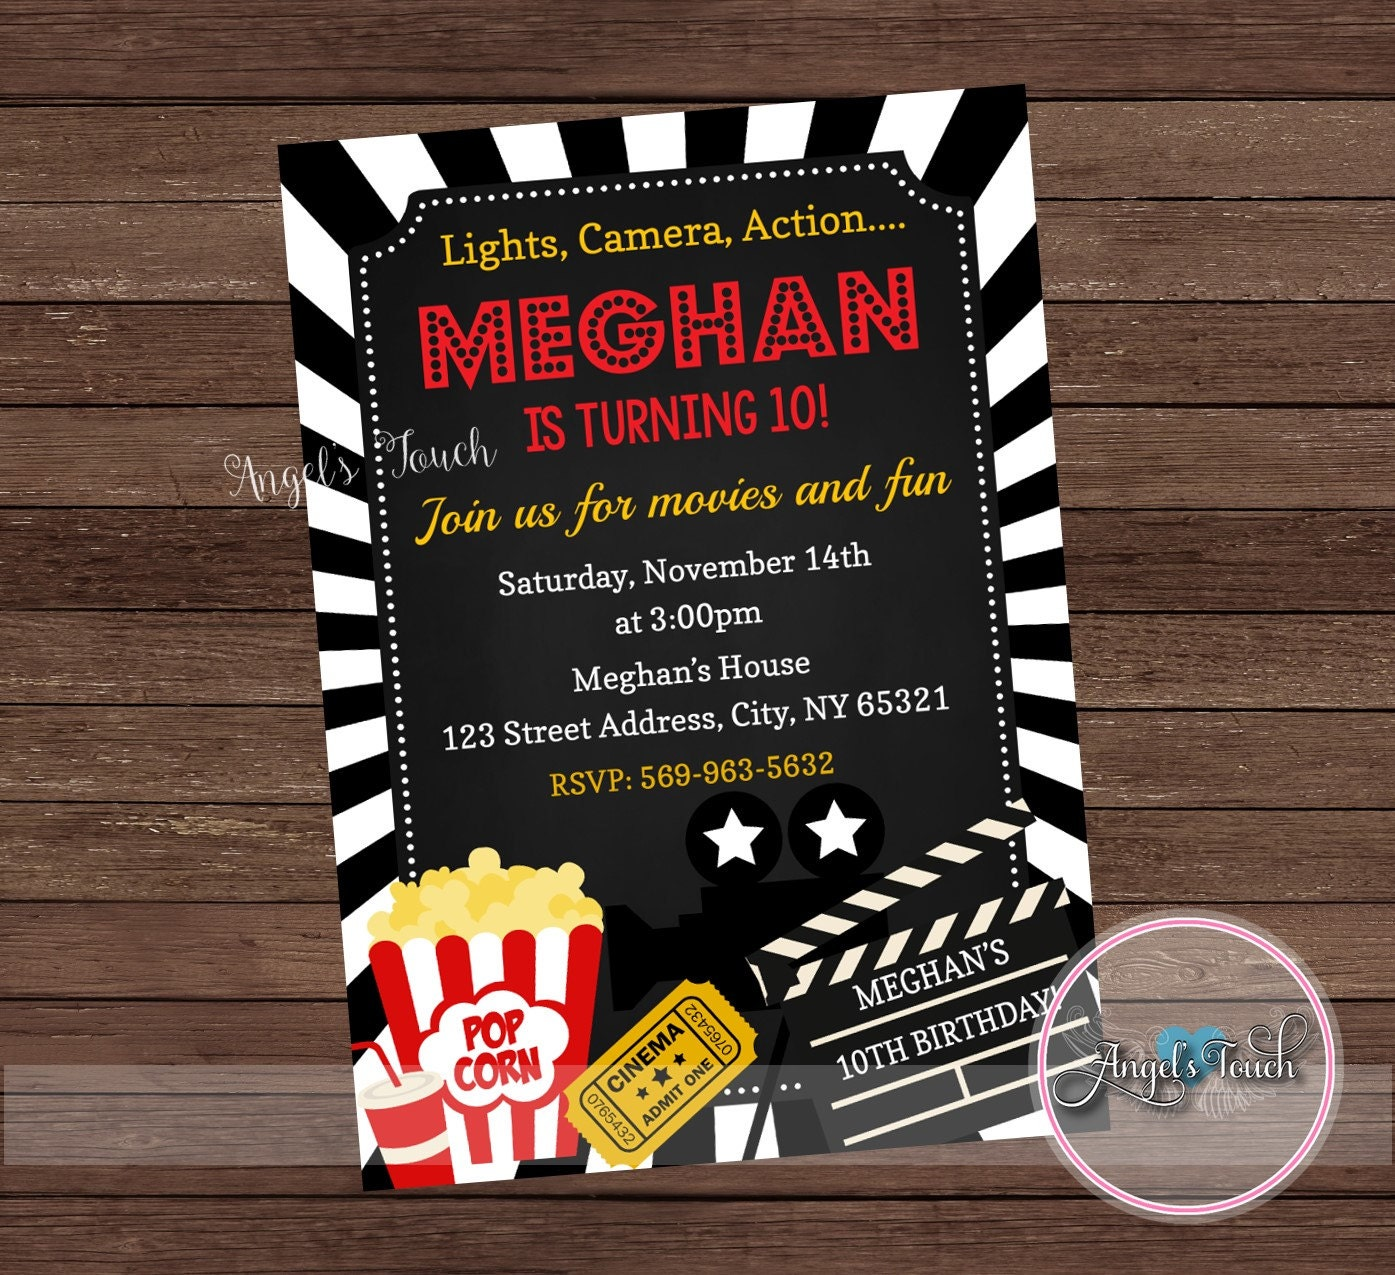 Red Carpet Party Invitation, Red Carpet Birthday Party Invitation ...